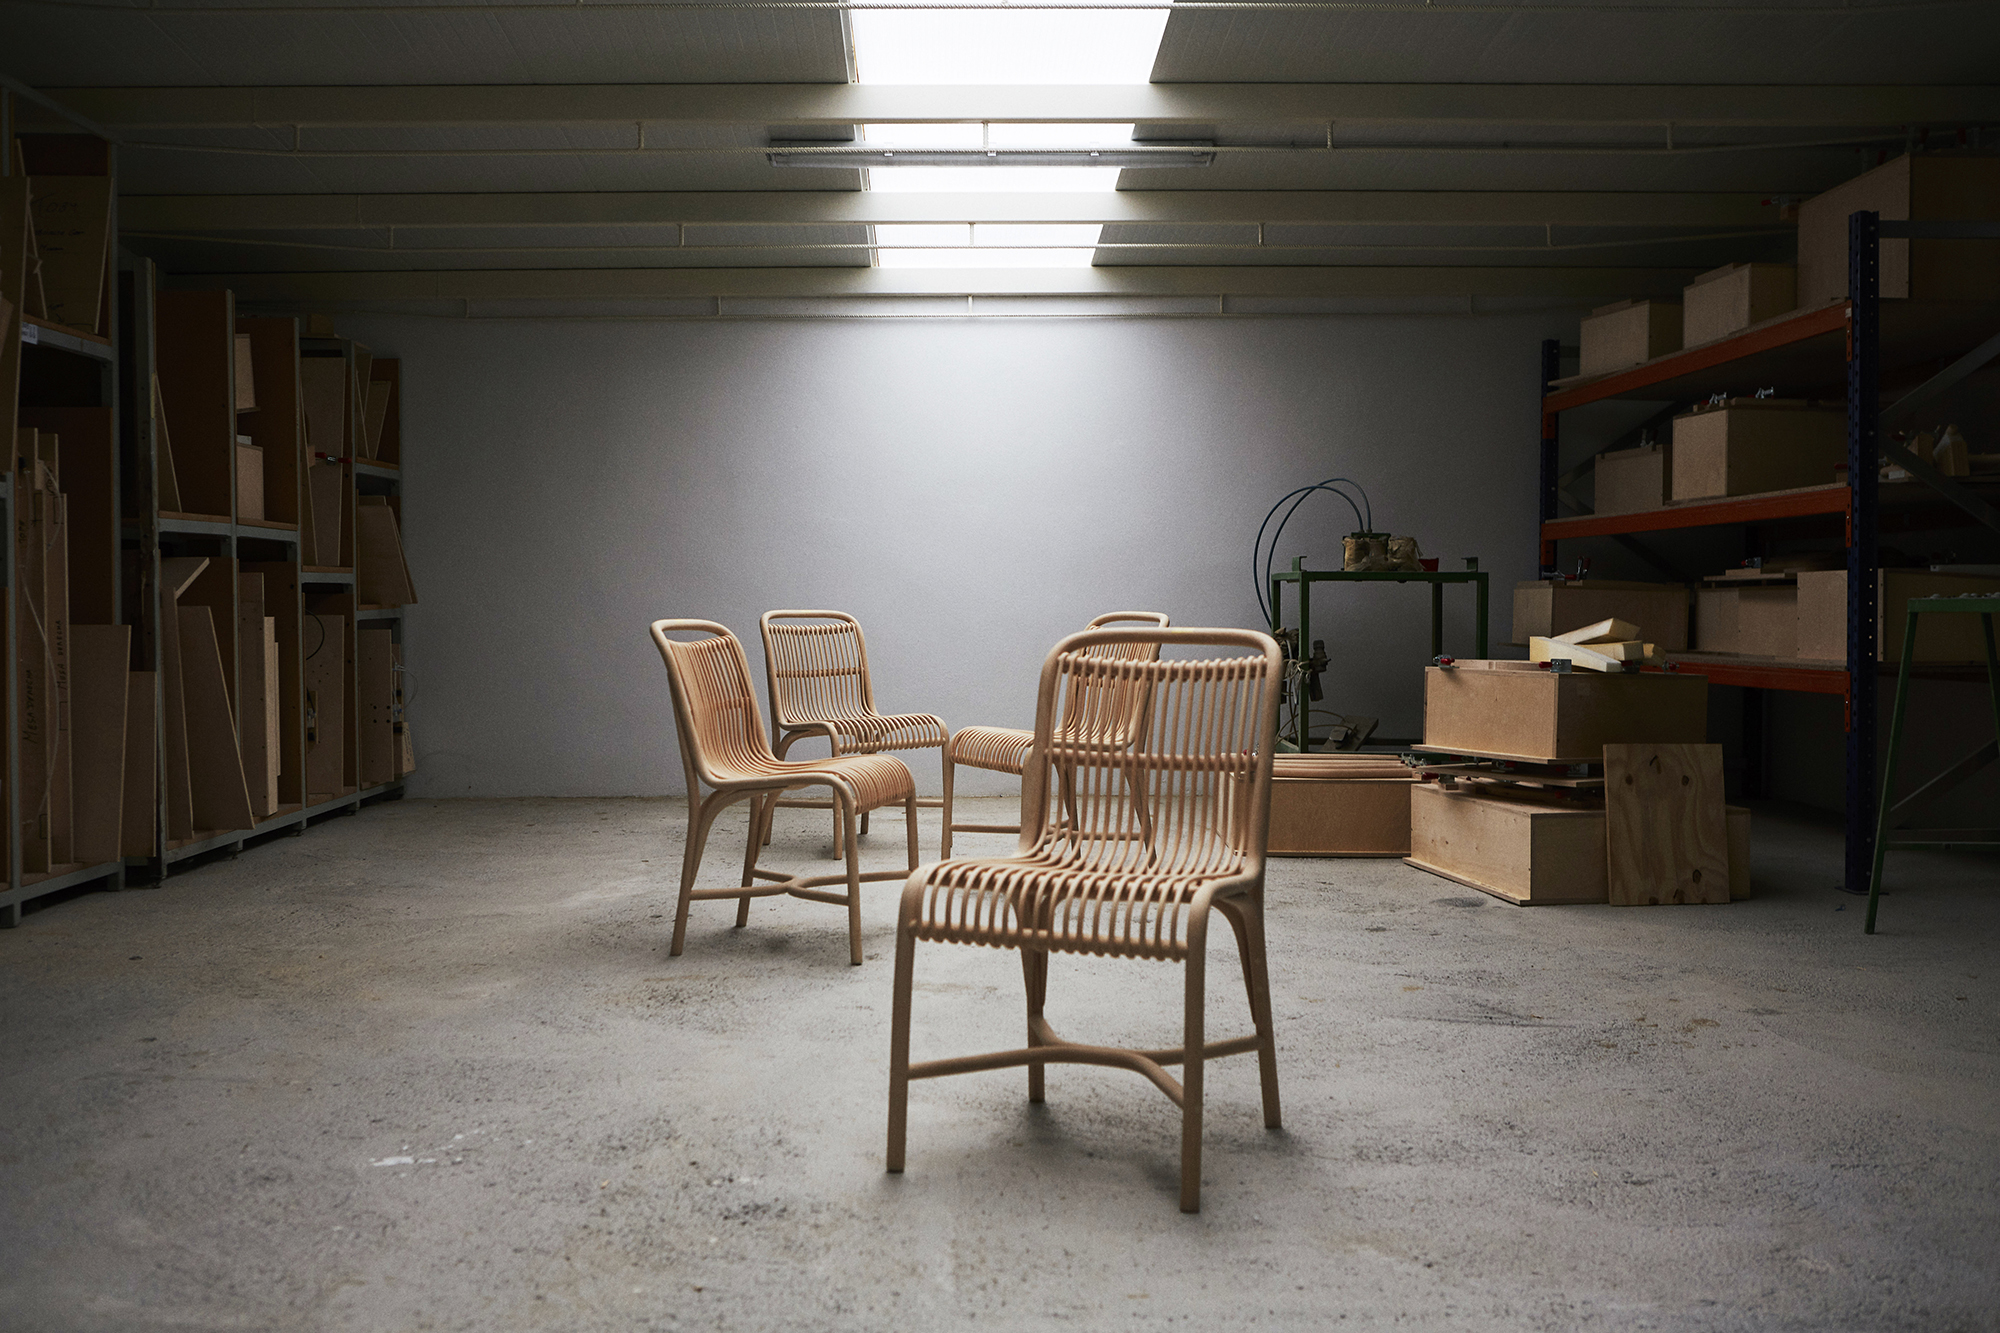 The factory where the Frames low armchair by Jaime Hayon is made